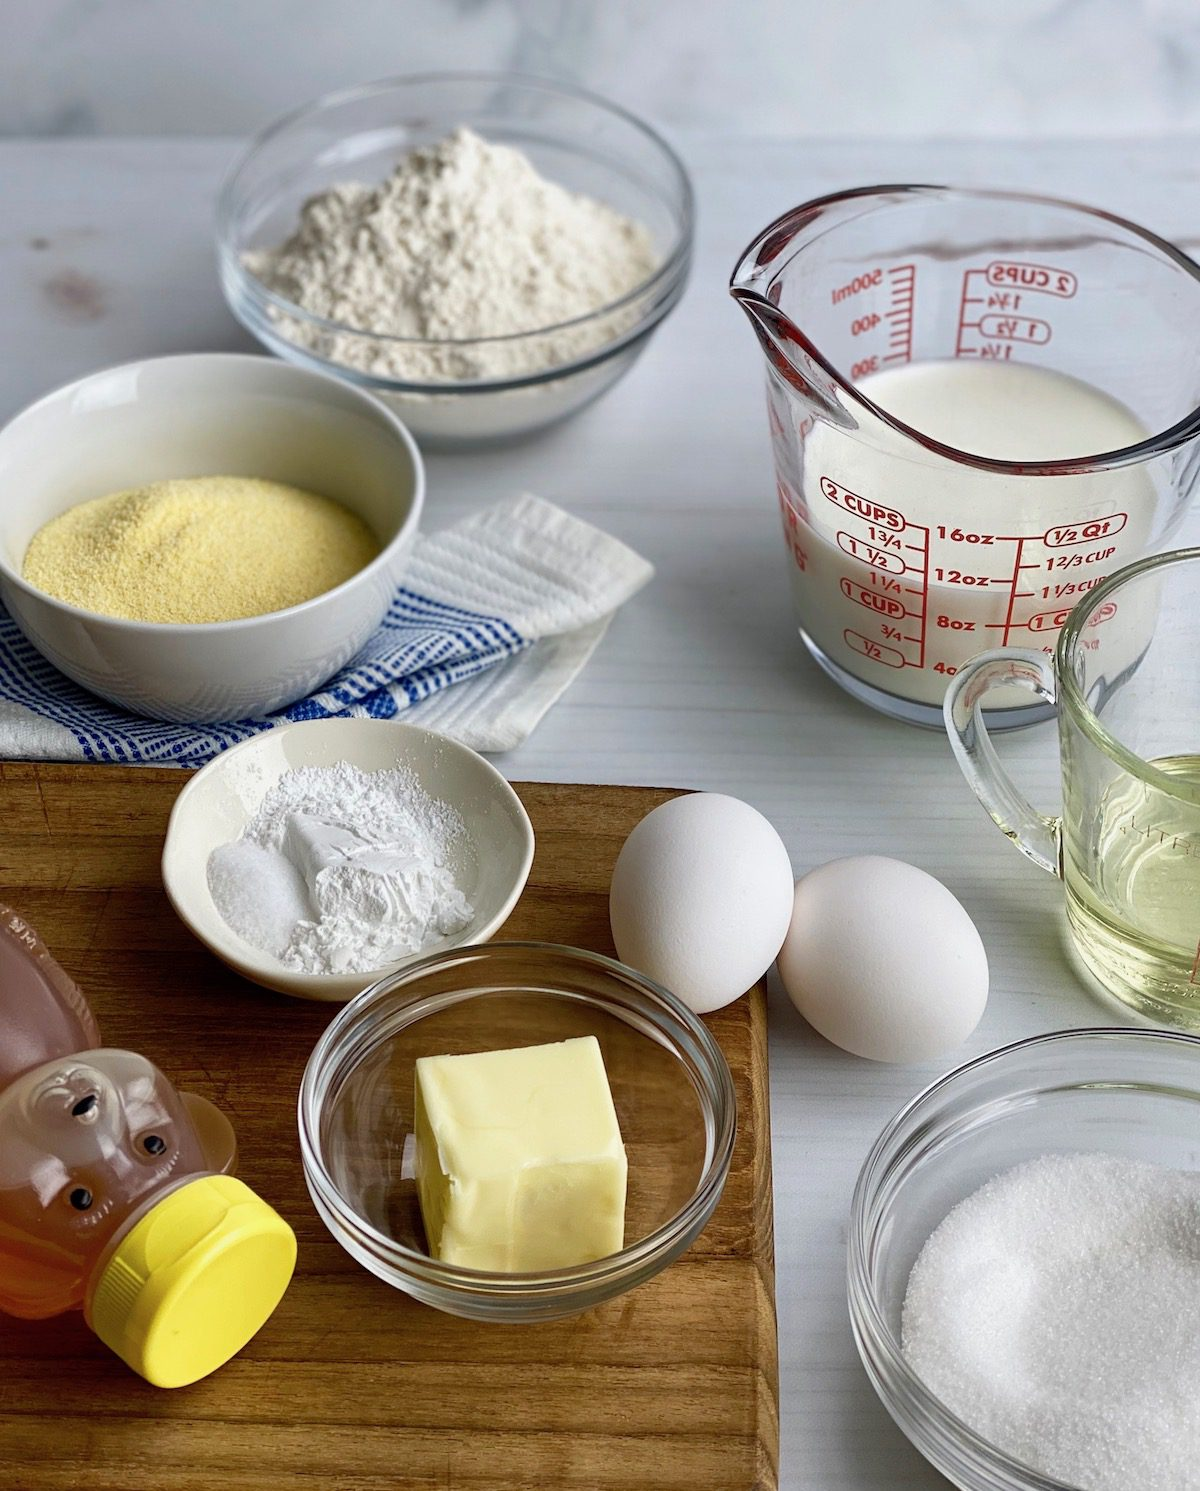 ingredients for homemade cornbread recipe